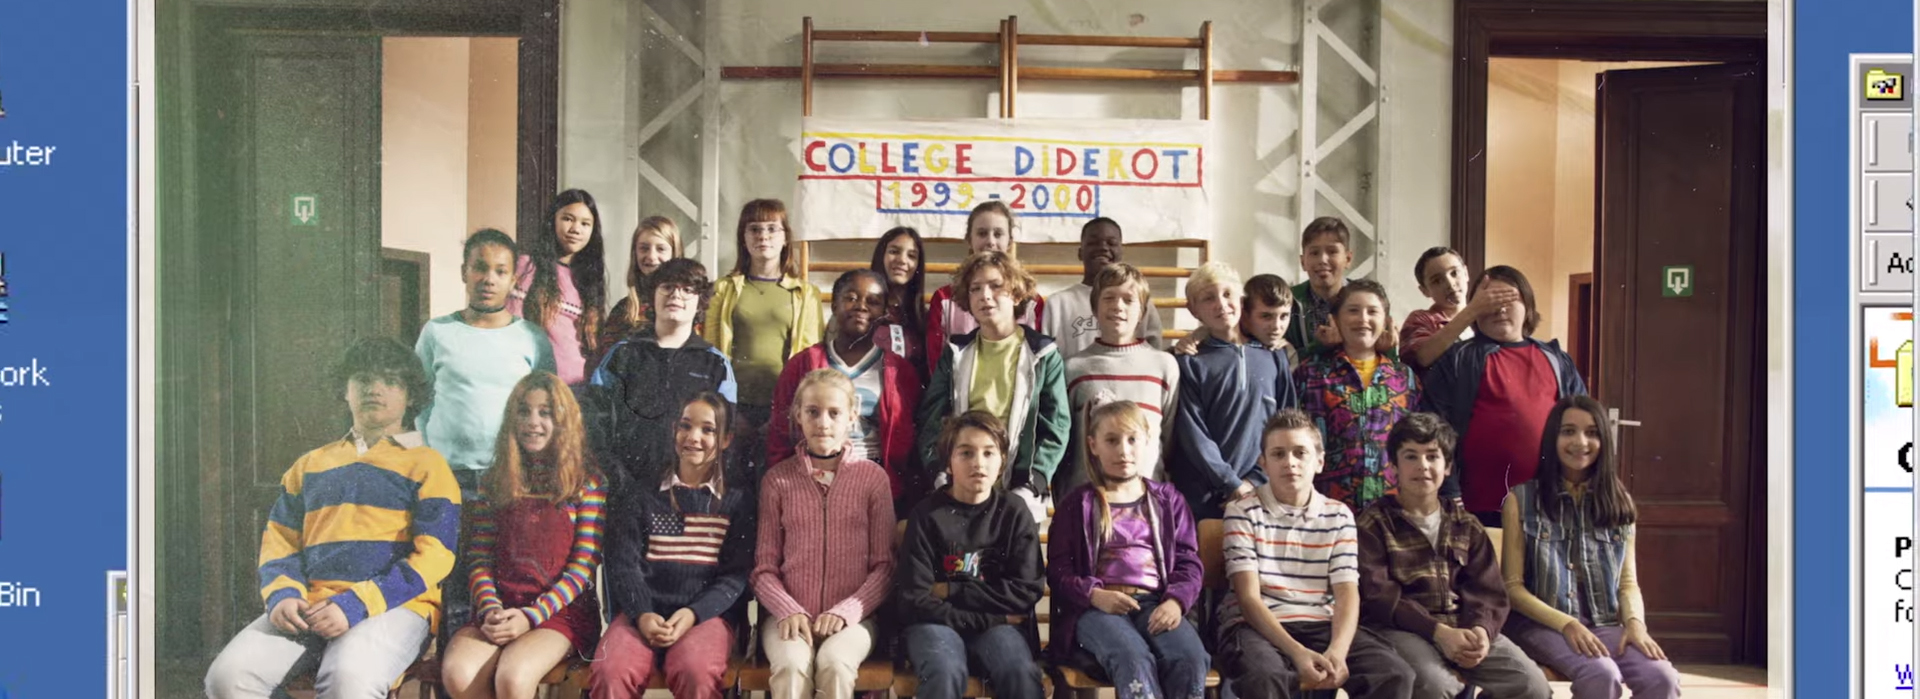 Back to School (La Grande Classe). Image Credit: Netflix.